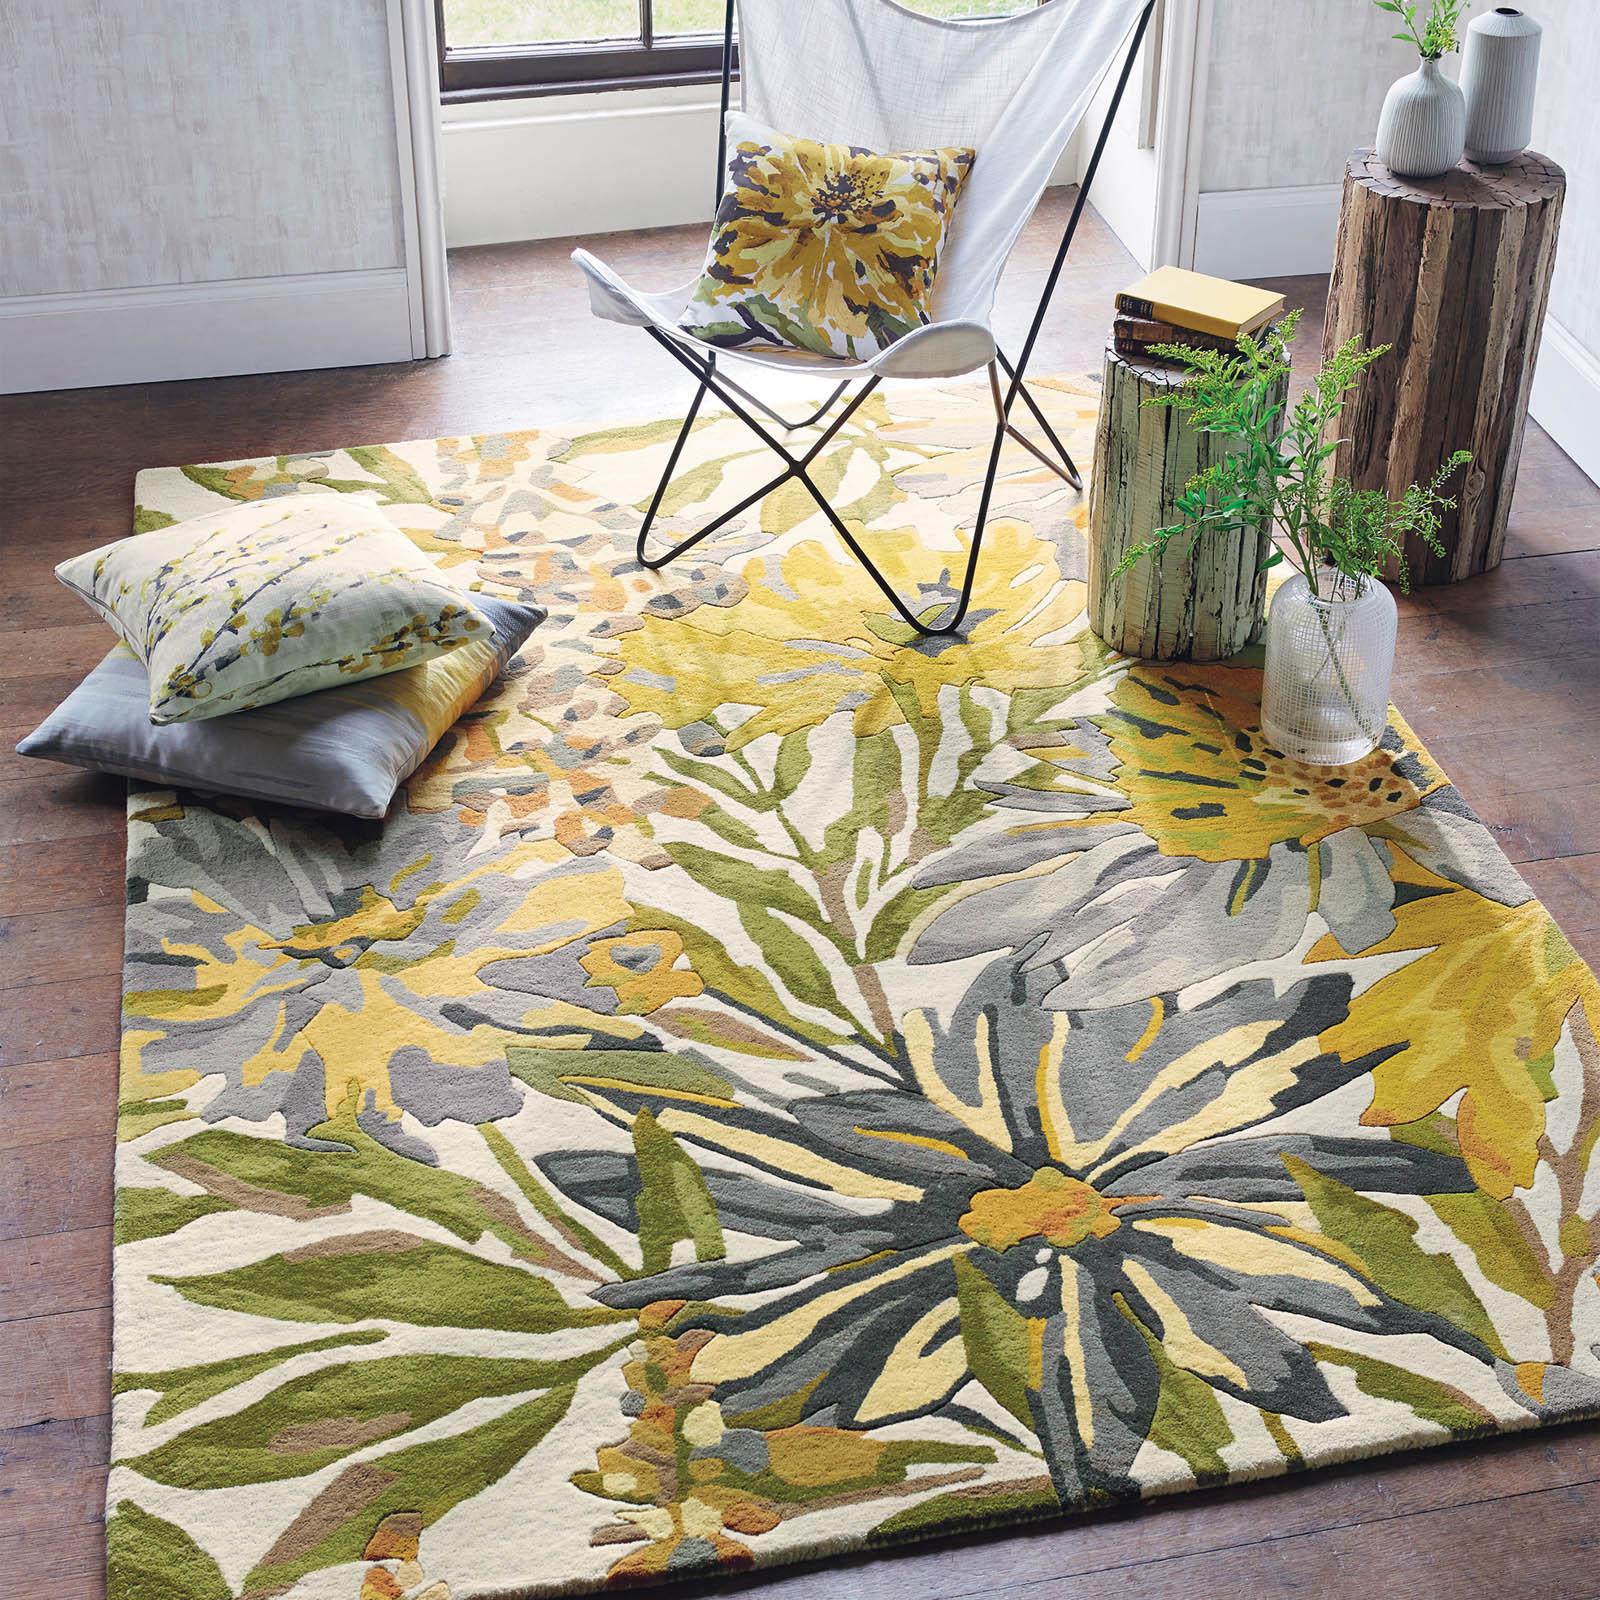 Mother's day gift, Floreale Rugs 44906 in Maize by Harlequin